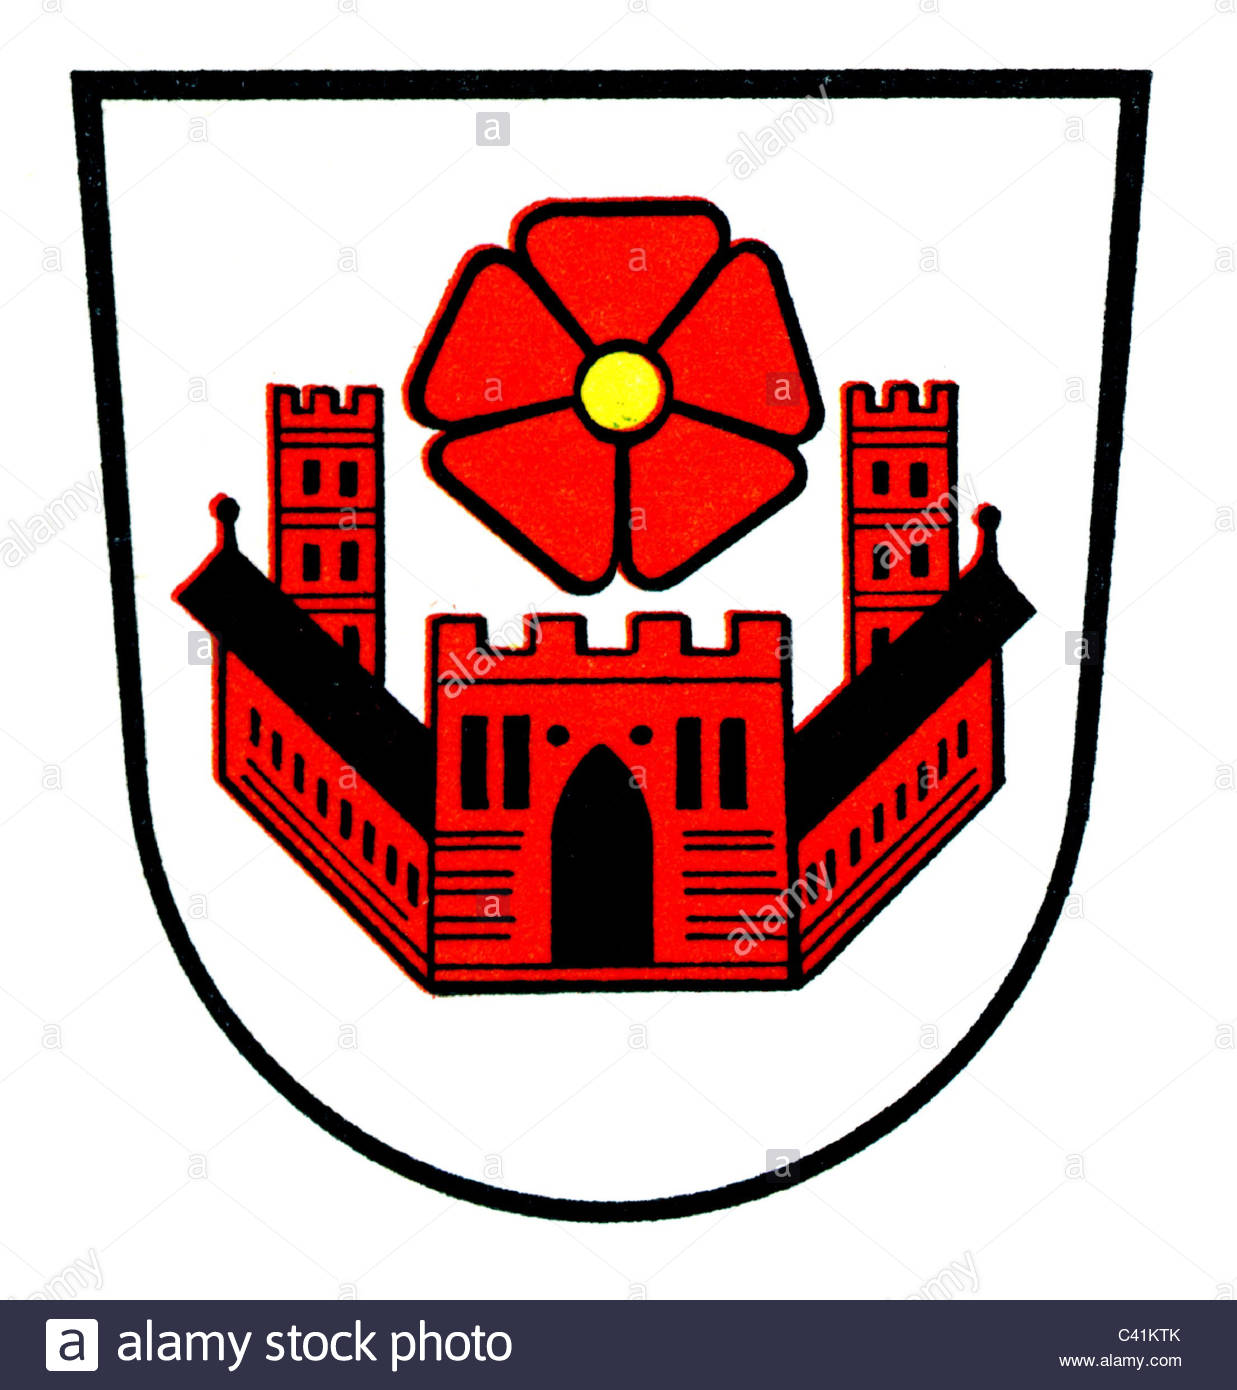 1237x1390 Coat Of Arms Emblems, Lippstadt, City Arms, North Rhine